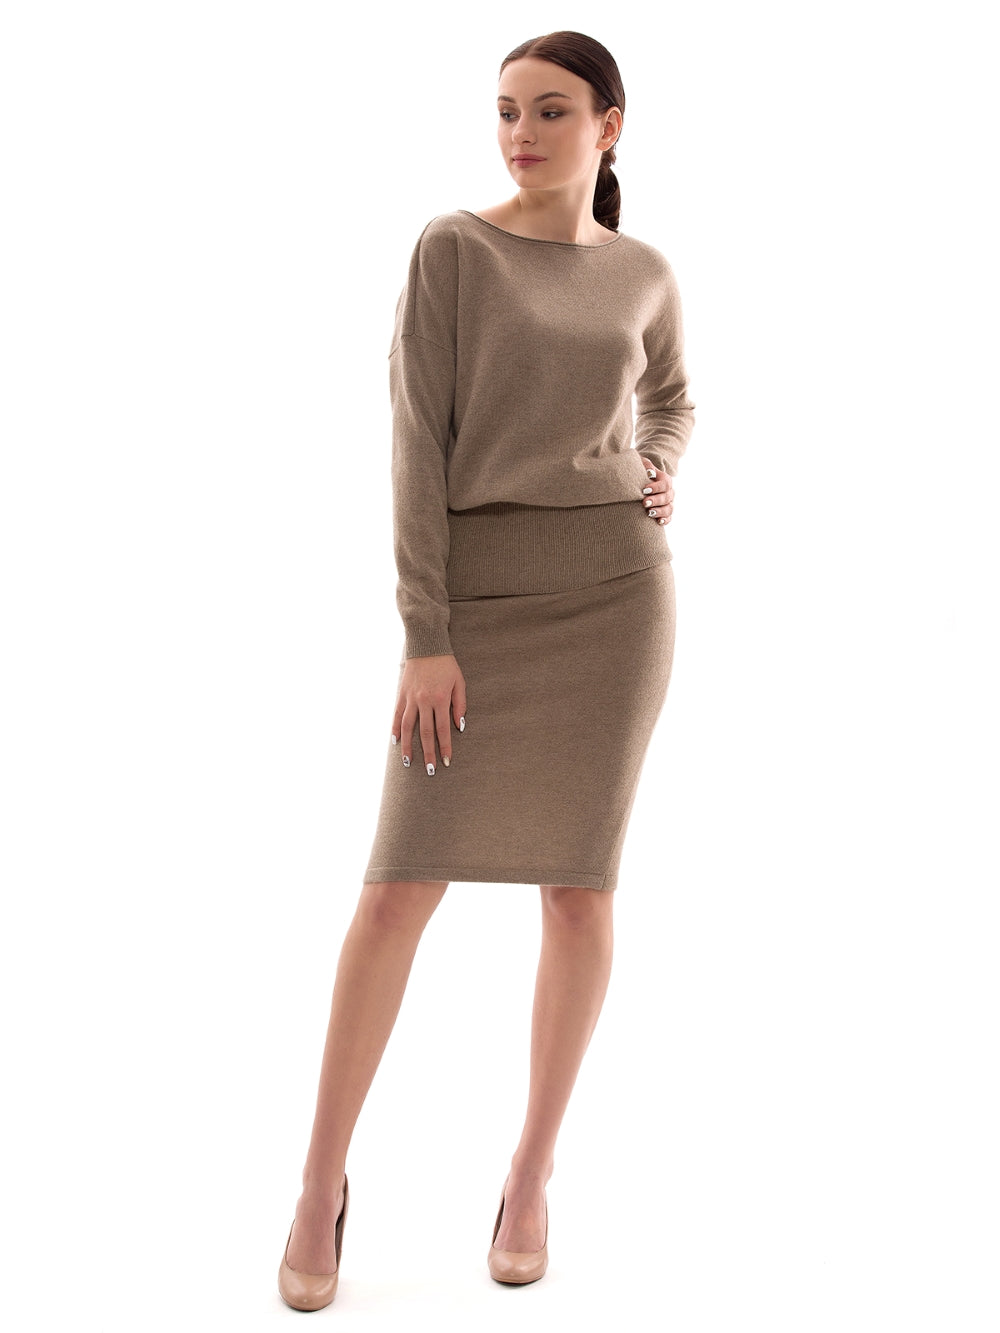 Inari Women's brown cashmere skirt - front side - 100% high-quality cashmere - Inari-clothing.fi